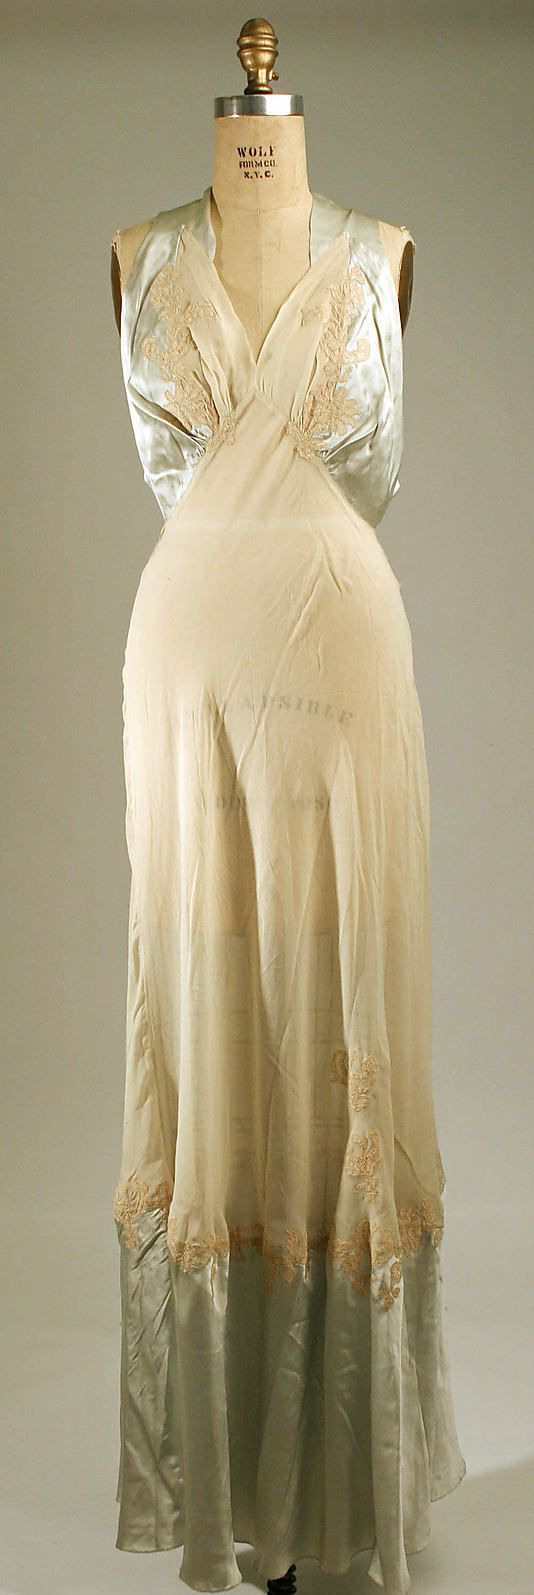 Nightgown  Date: 1940s Culture: American or European